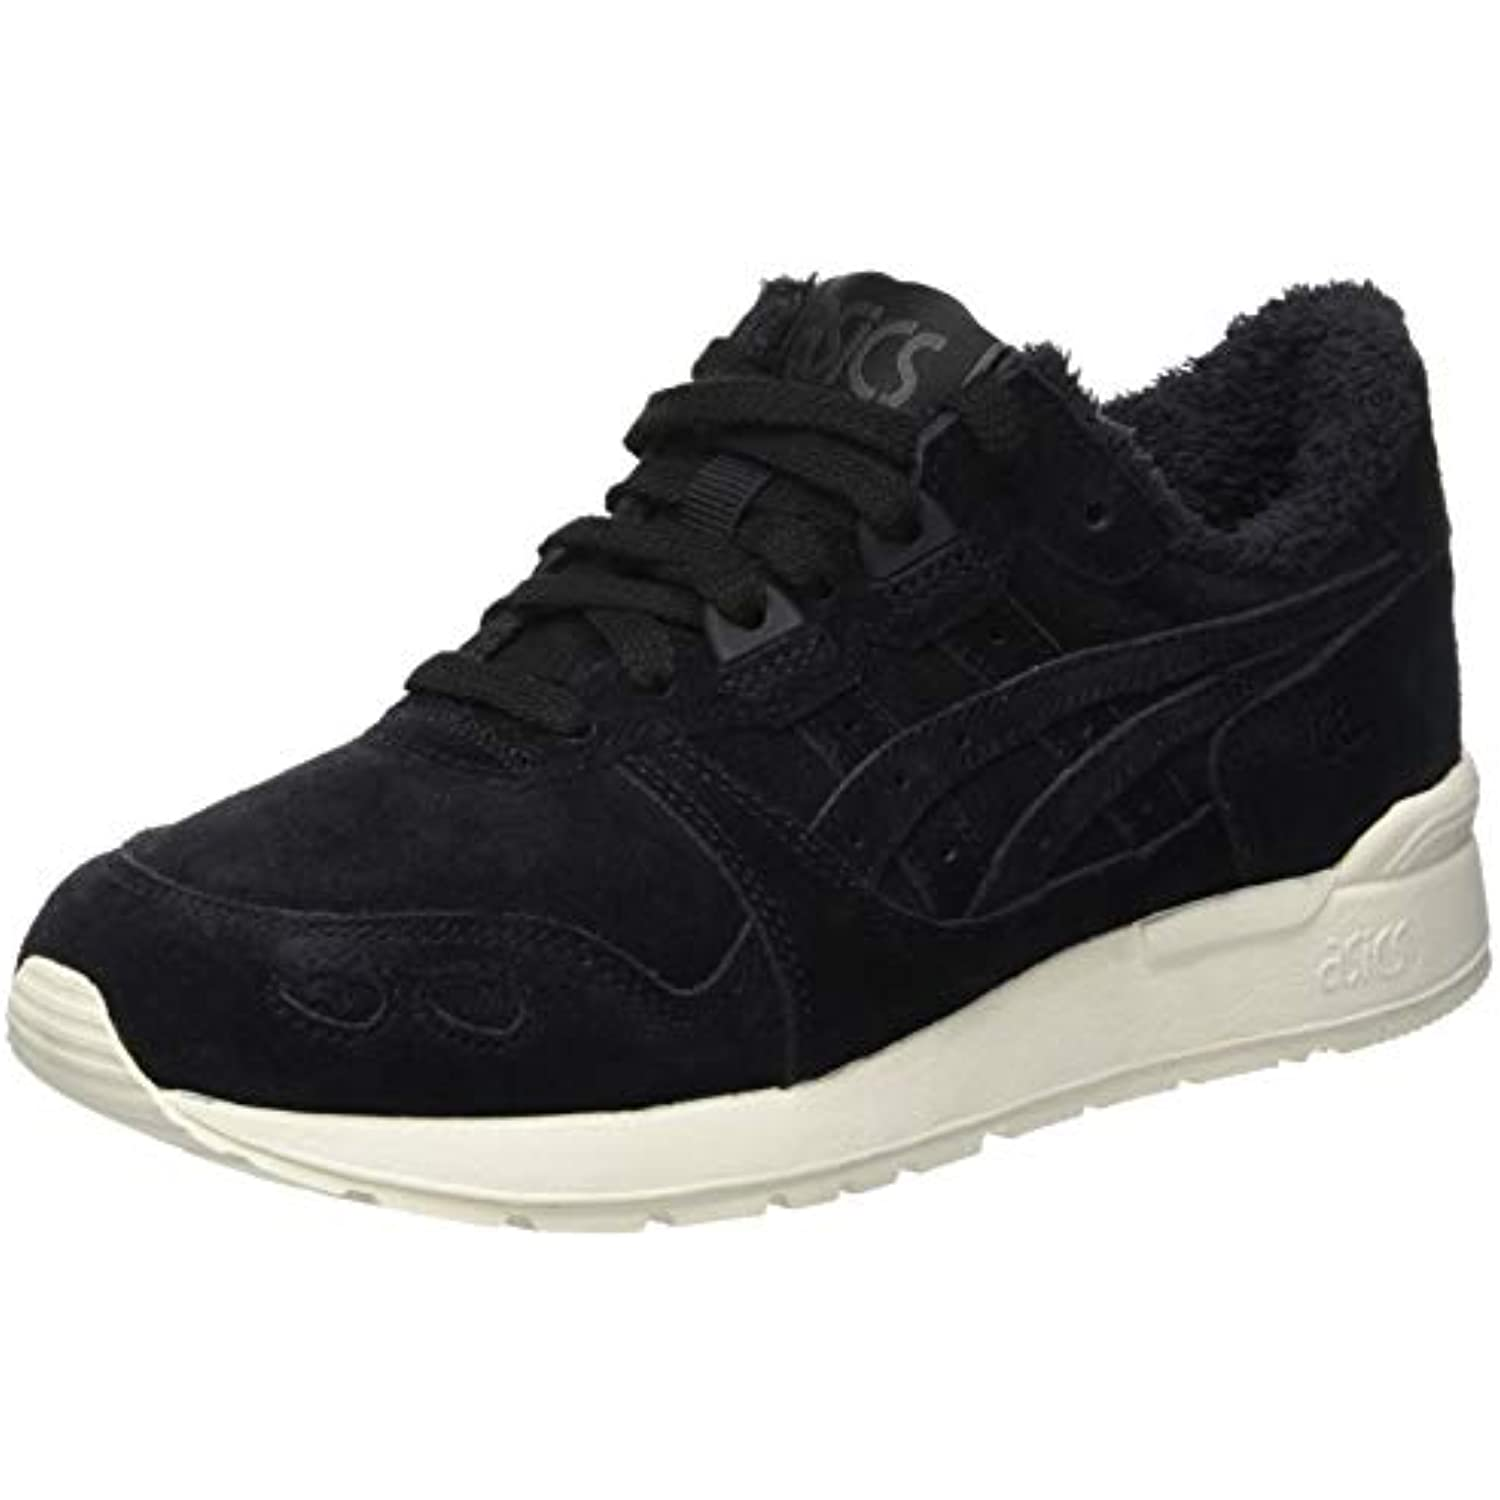 ASICS Gel-Lyte, Chaussures de Running Mixte Adulte Adulte Adulte - B07CZB2N26 - 0980a3